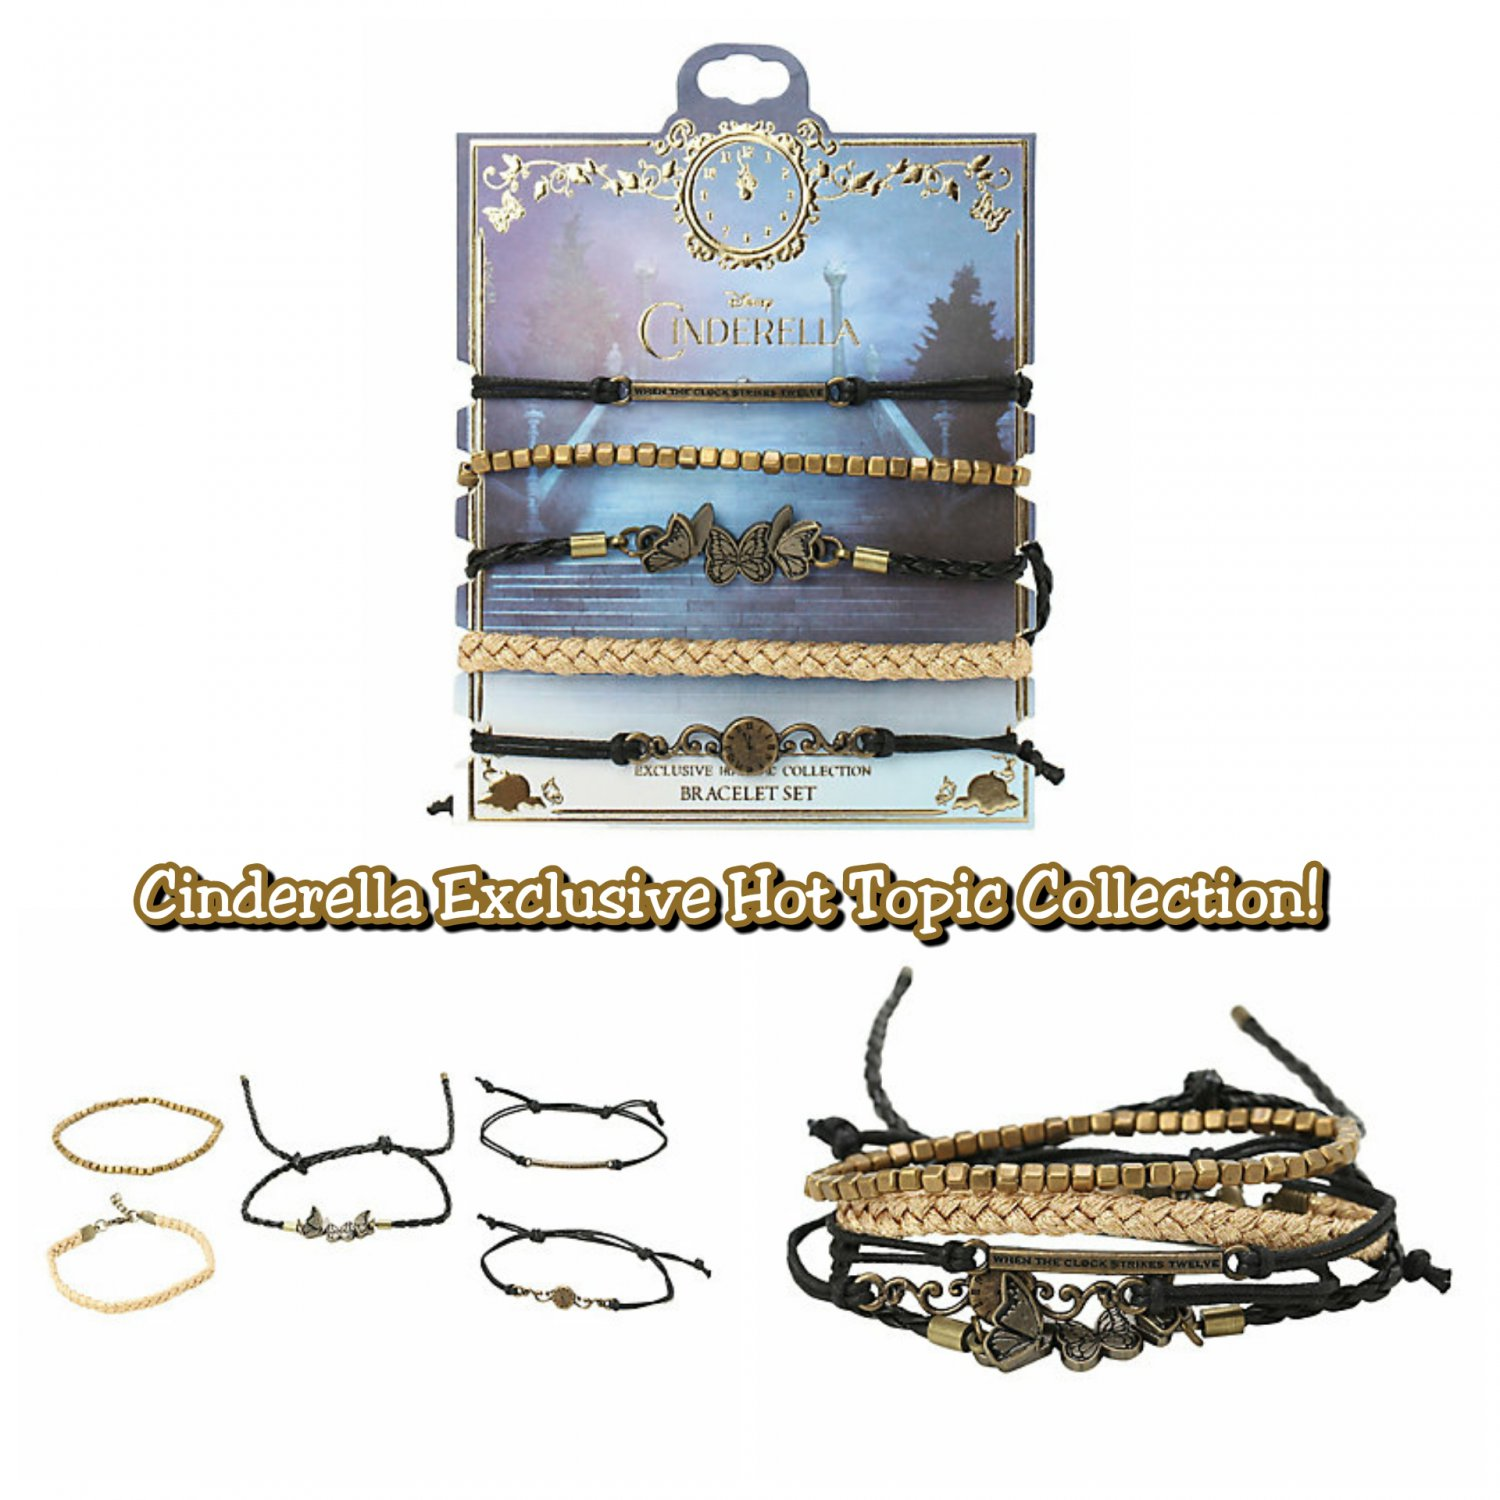 Disney Cinderella Exclusive Hot Topic Collection Black & Gold Bracelet 5 Pack Set by HighIntenCity